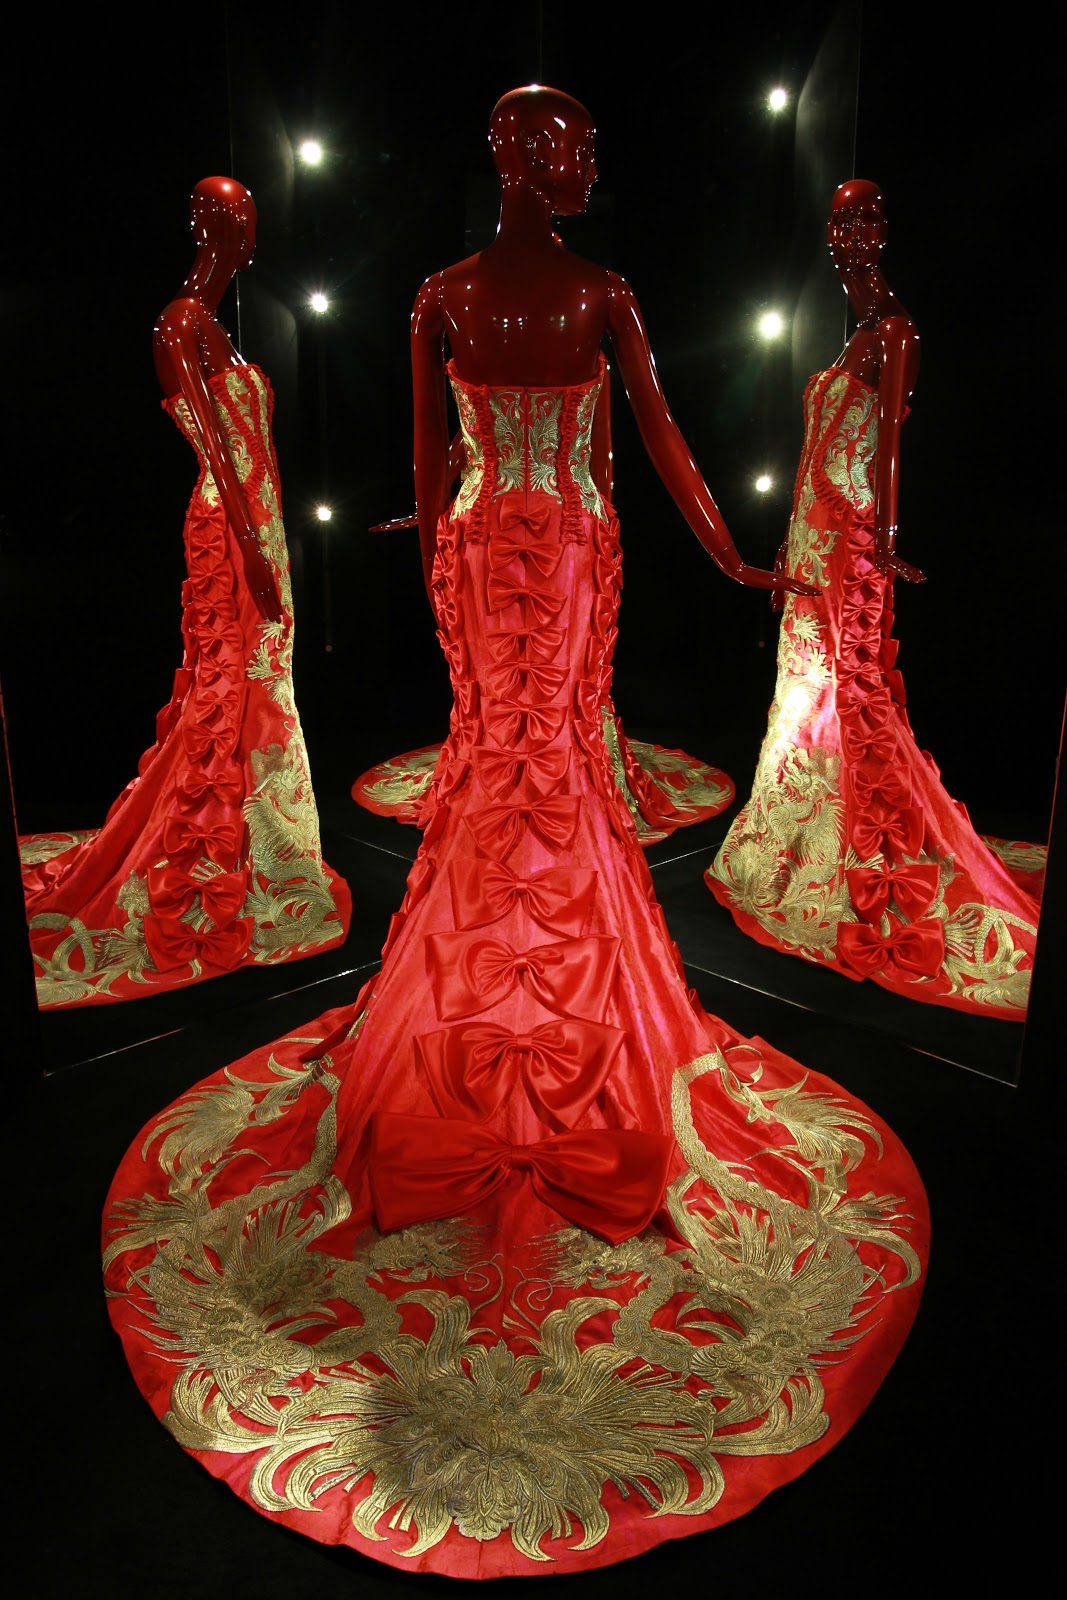 Guo Pei to open first boutique in Shanghai Nov 5